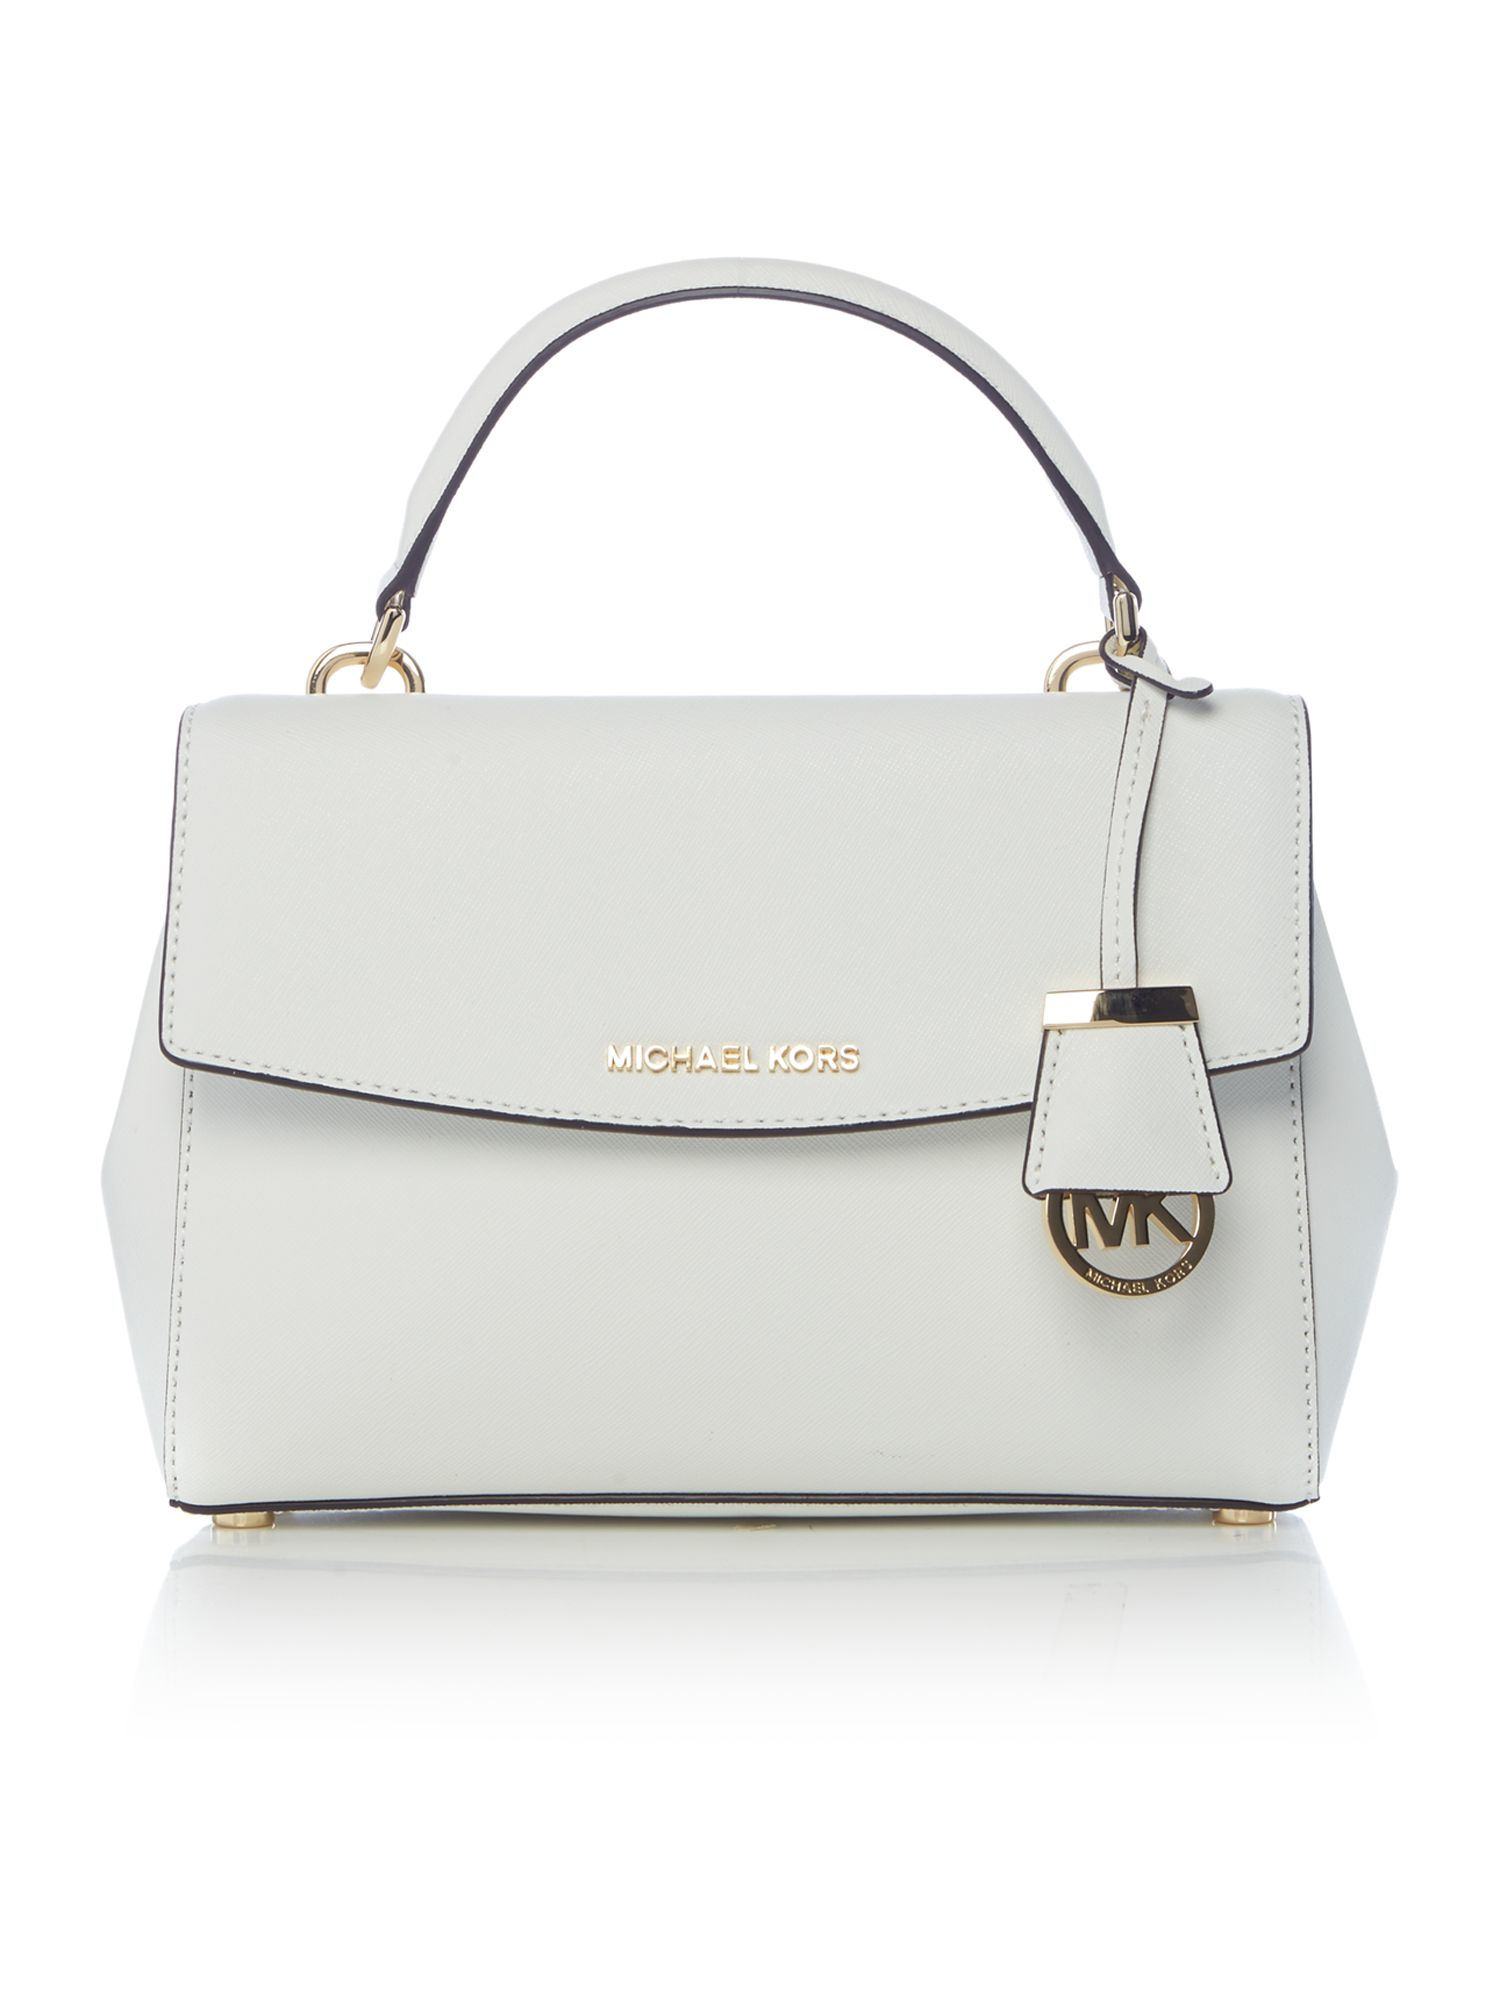 Michael kors Ava White Small Satchel Bag in White | Lyst